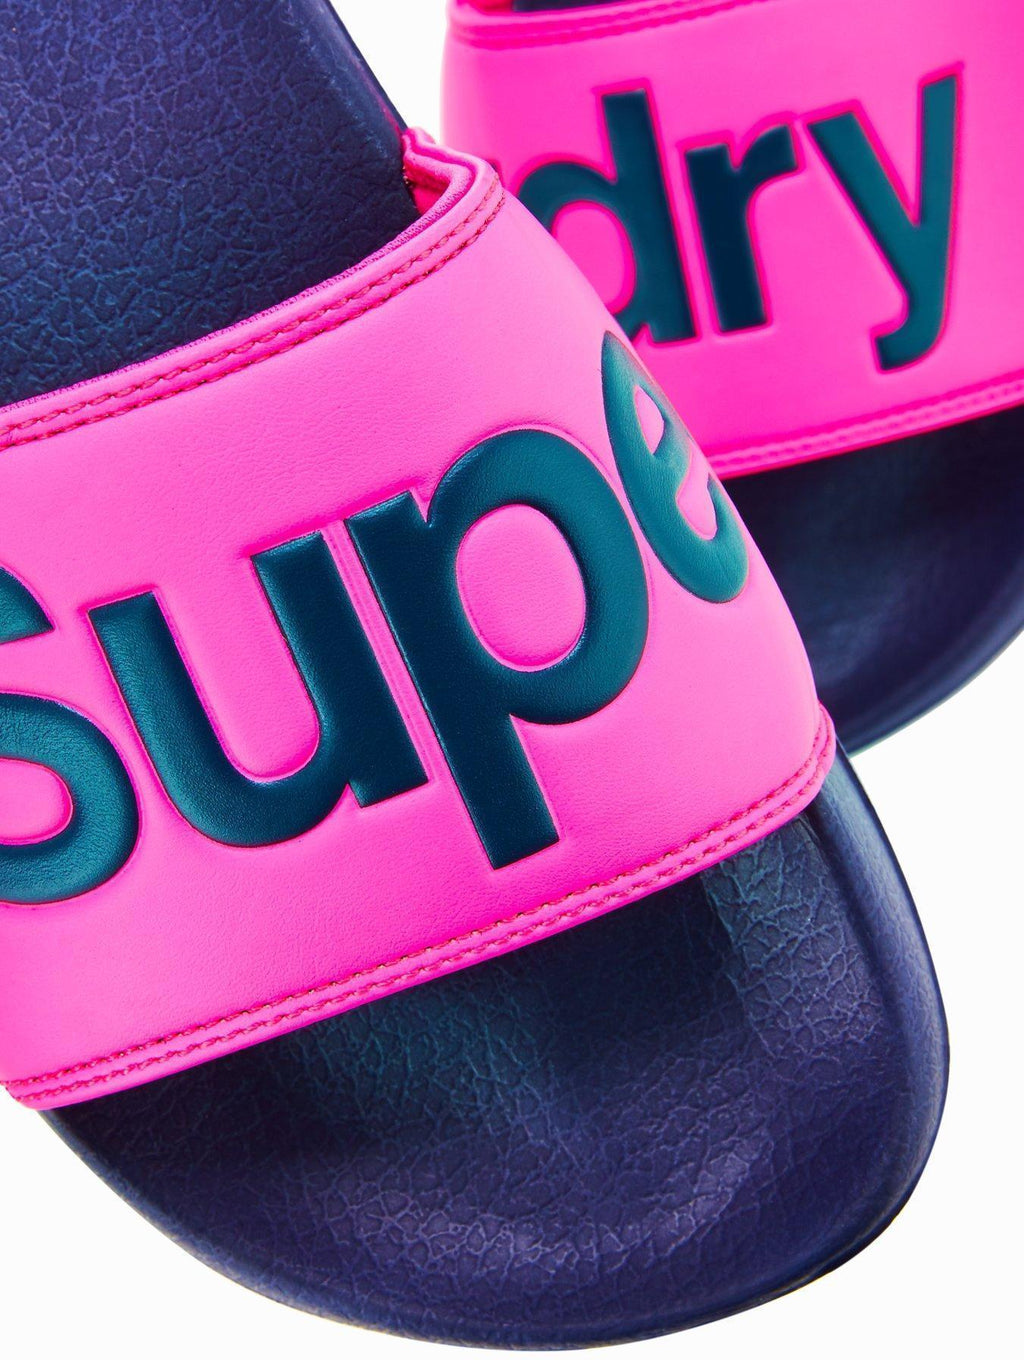 Superdry Women's Pool Sliders